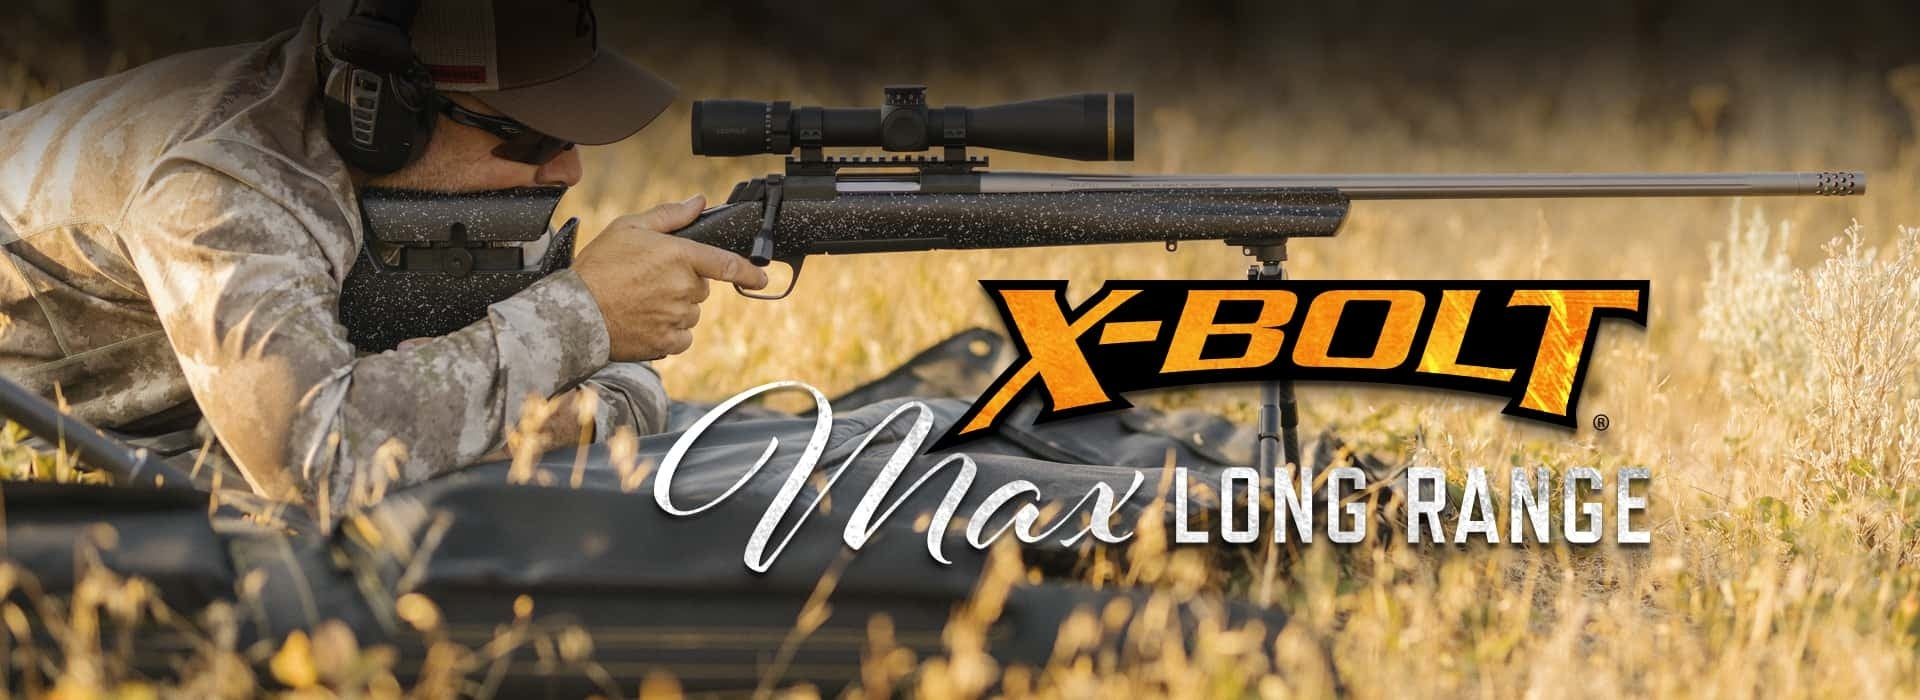 X-Bolt Long Range Large Banner